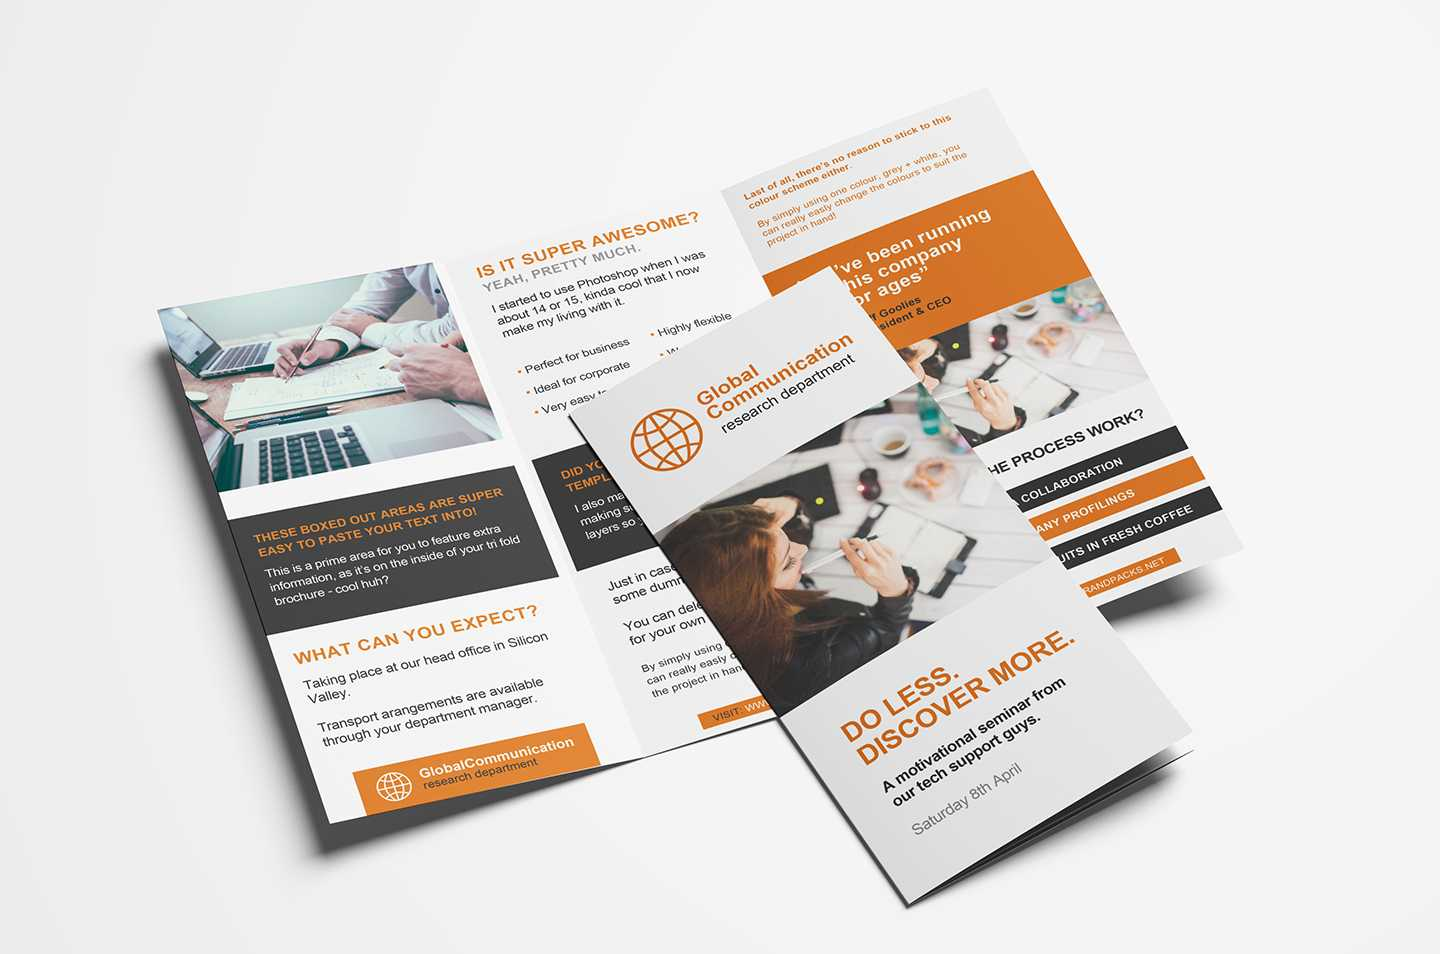 001 Free Fold Brochure Template For Photoshop Illustrator Regarding Free Illustrator Brochure Templates Download